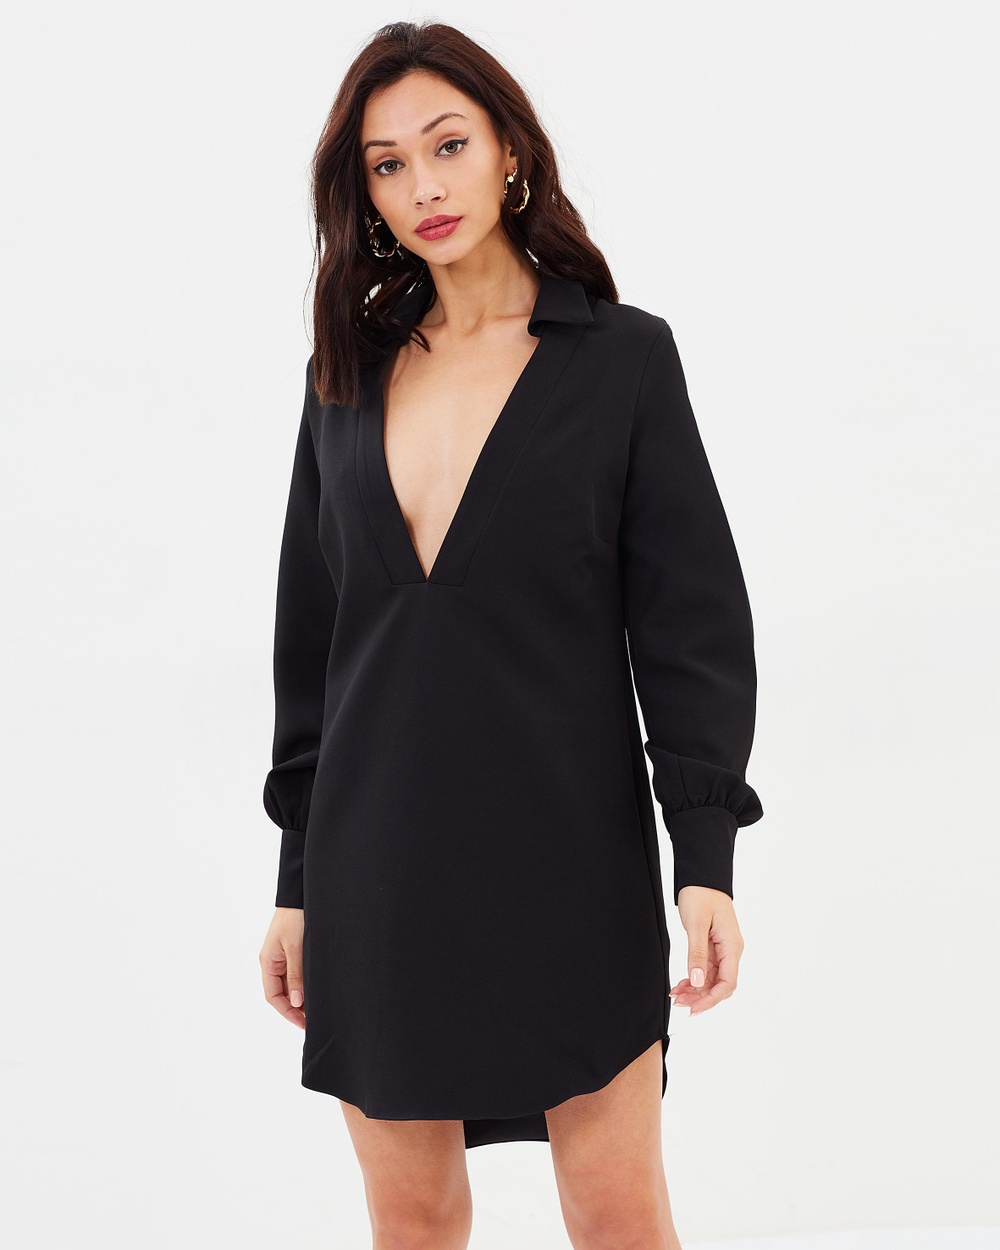 Missguided Peace + Love Loose Fit Dress Dresses Black Peace + Love Loose Fit Dress